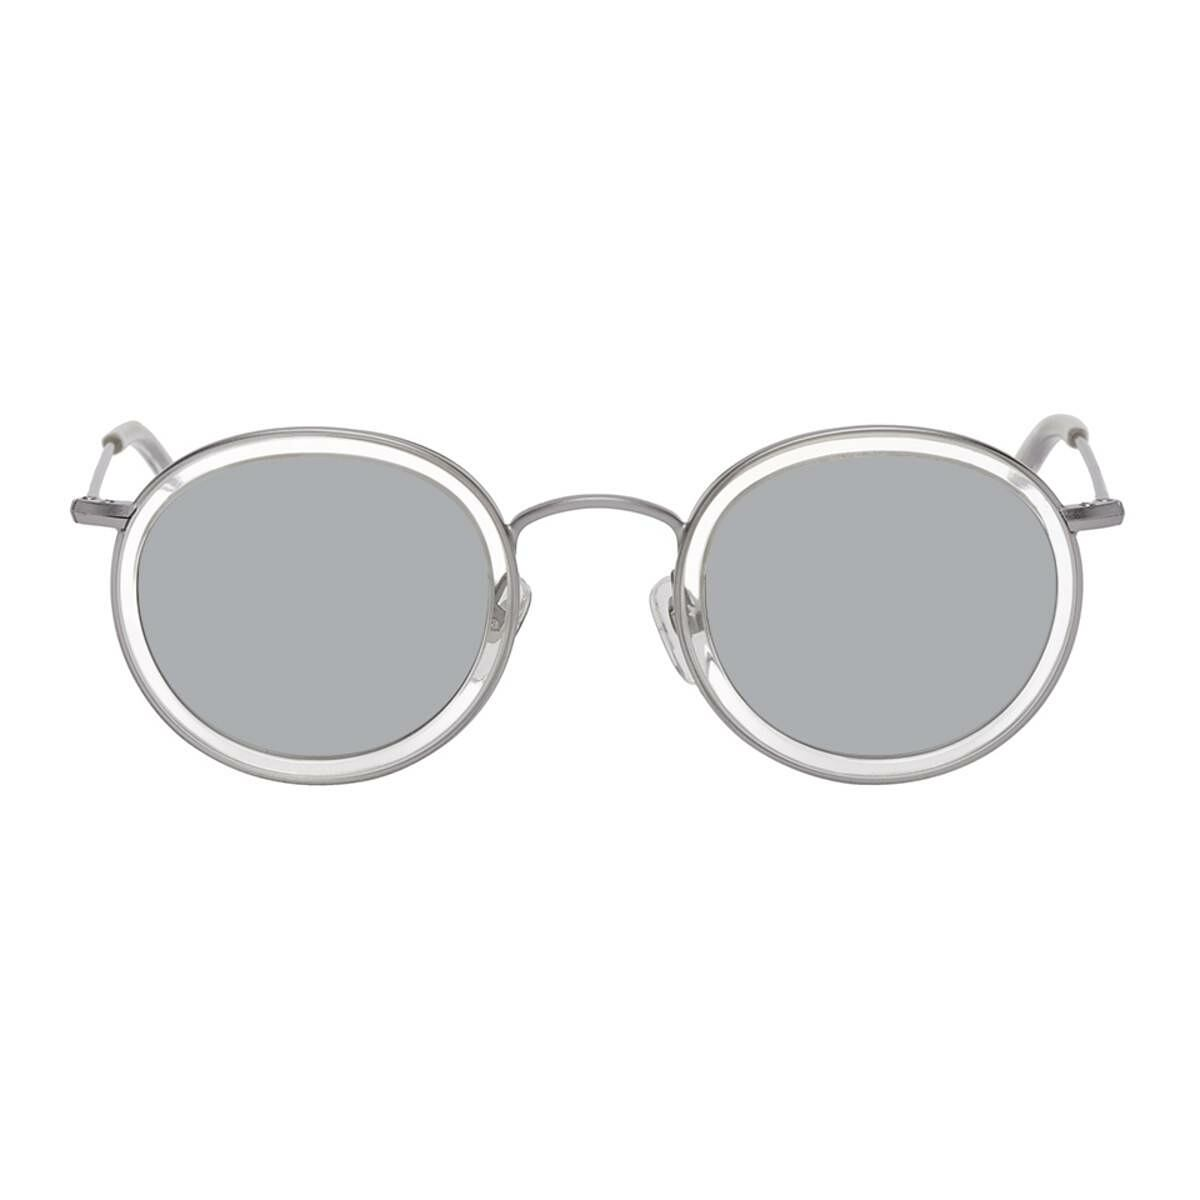 Han Kjobenhavn Silver Drum Sunglasses Ssense USA MEN Men ACCESSORIES Mens SUNGLASSES